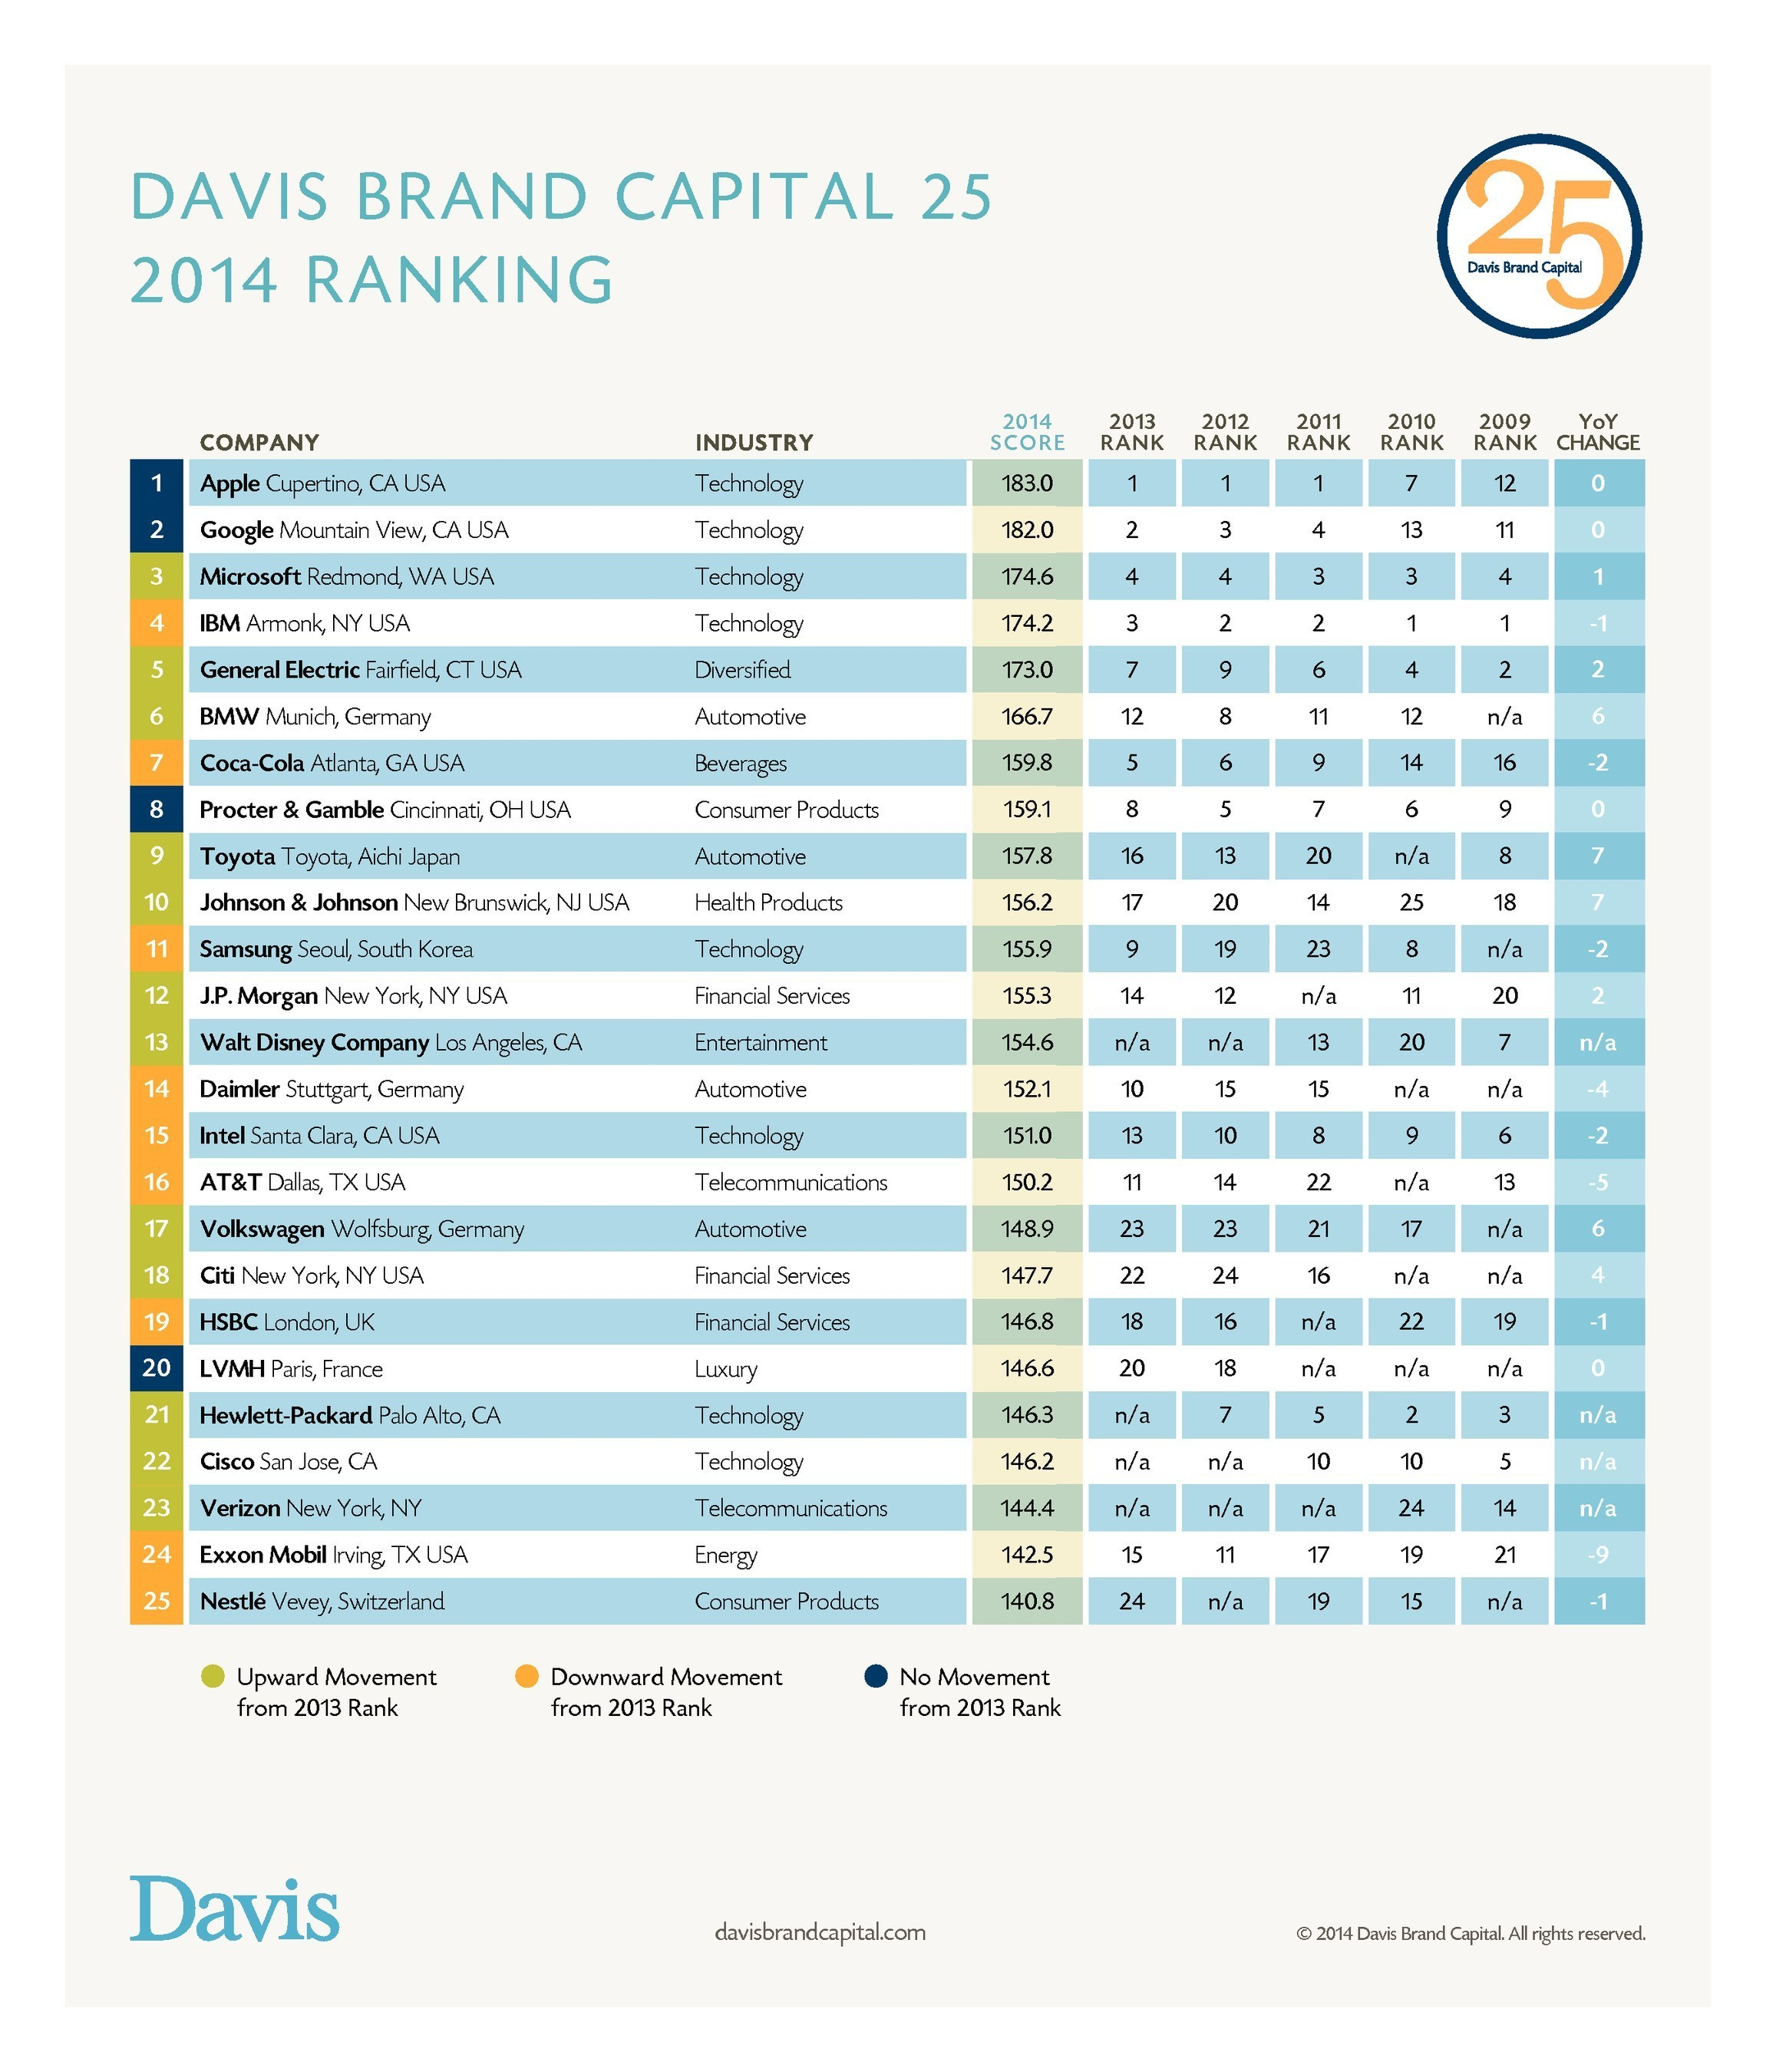 Pic. Davis Brand Capital 2014 Ranking 2014